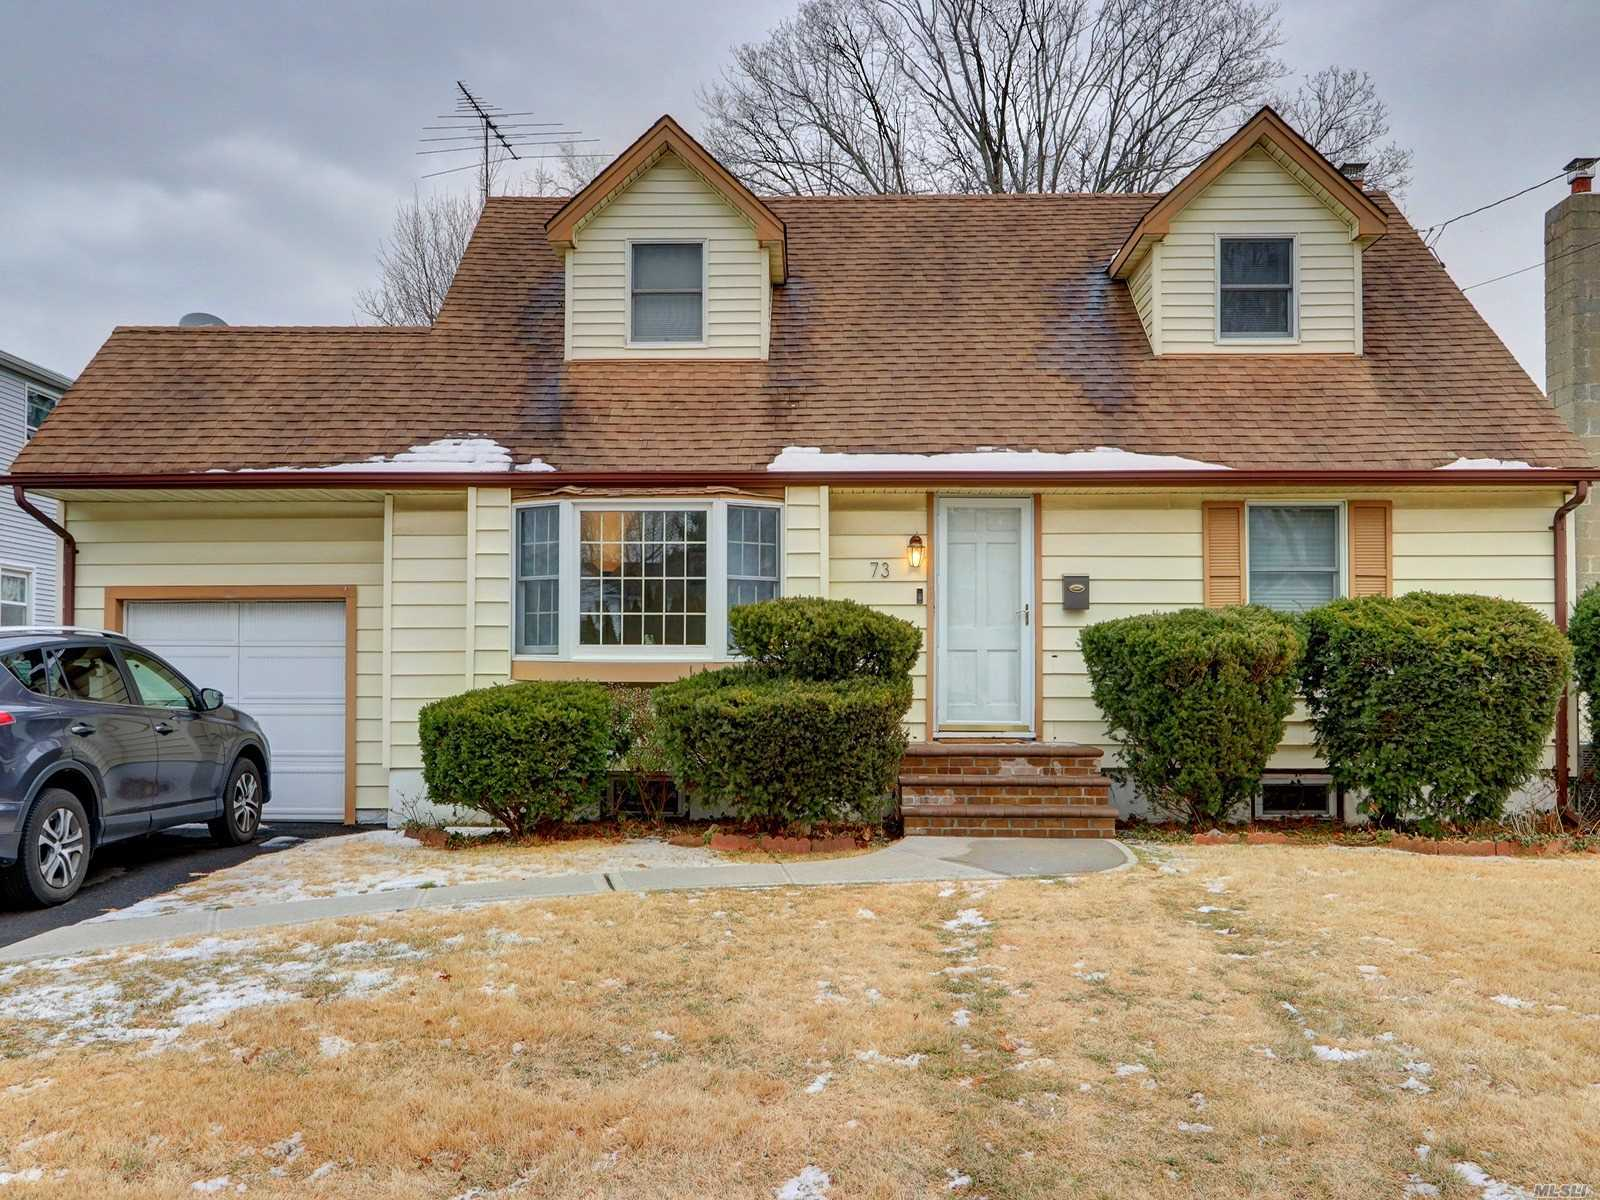 Charming Cape In Desirable Massapequa Park! 4 Bedrooms, 1 Bath, Living Room, Dining Room, Kitchen, Beautiful Hardwood Floors Throughout! Full Basement, Private Yard, Quiet Street, Close To All! Don't Miss Out On This Wonderful Home!